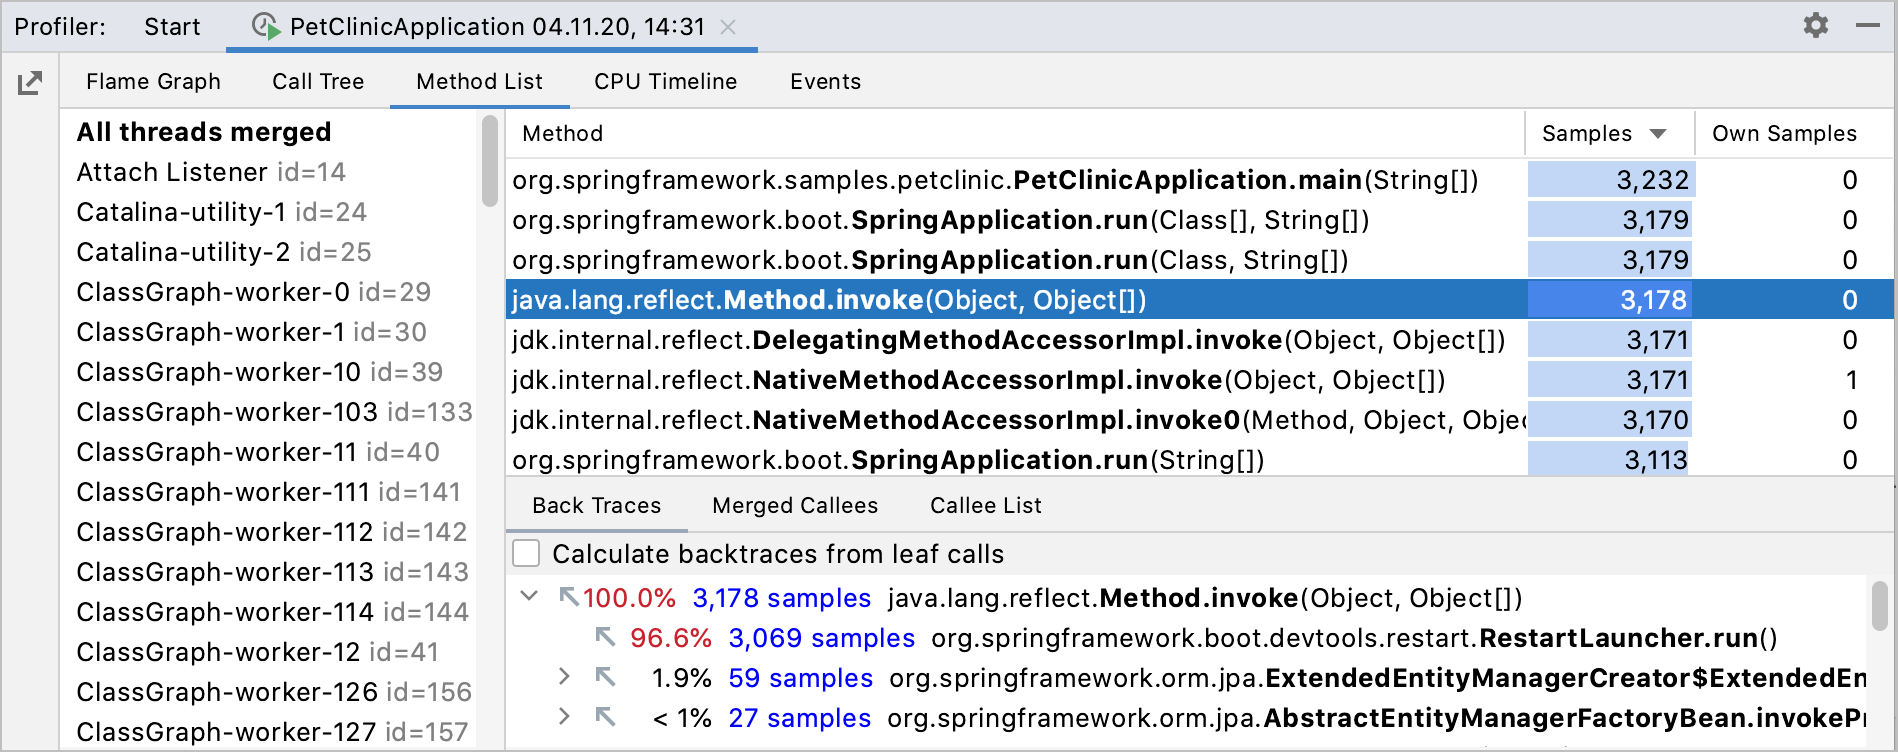 method list tab in the profiler results